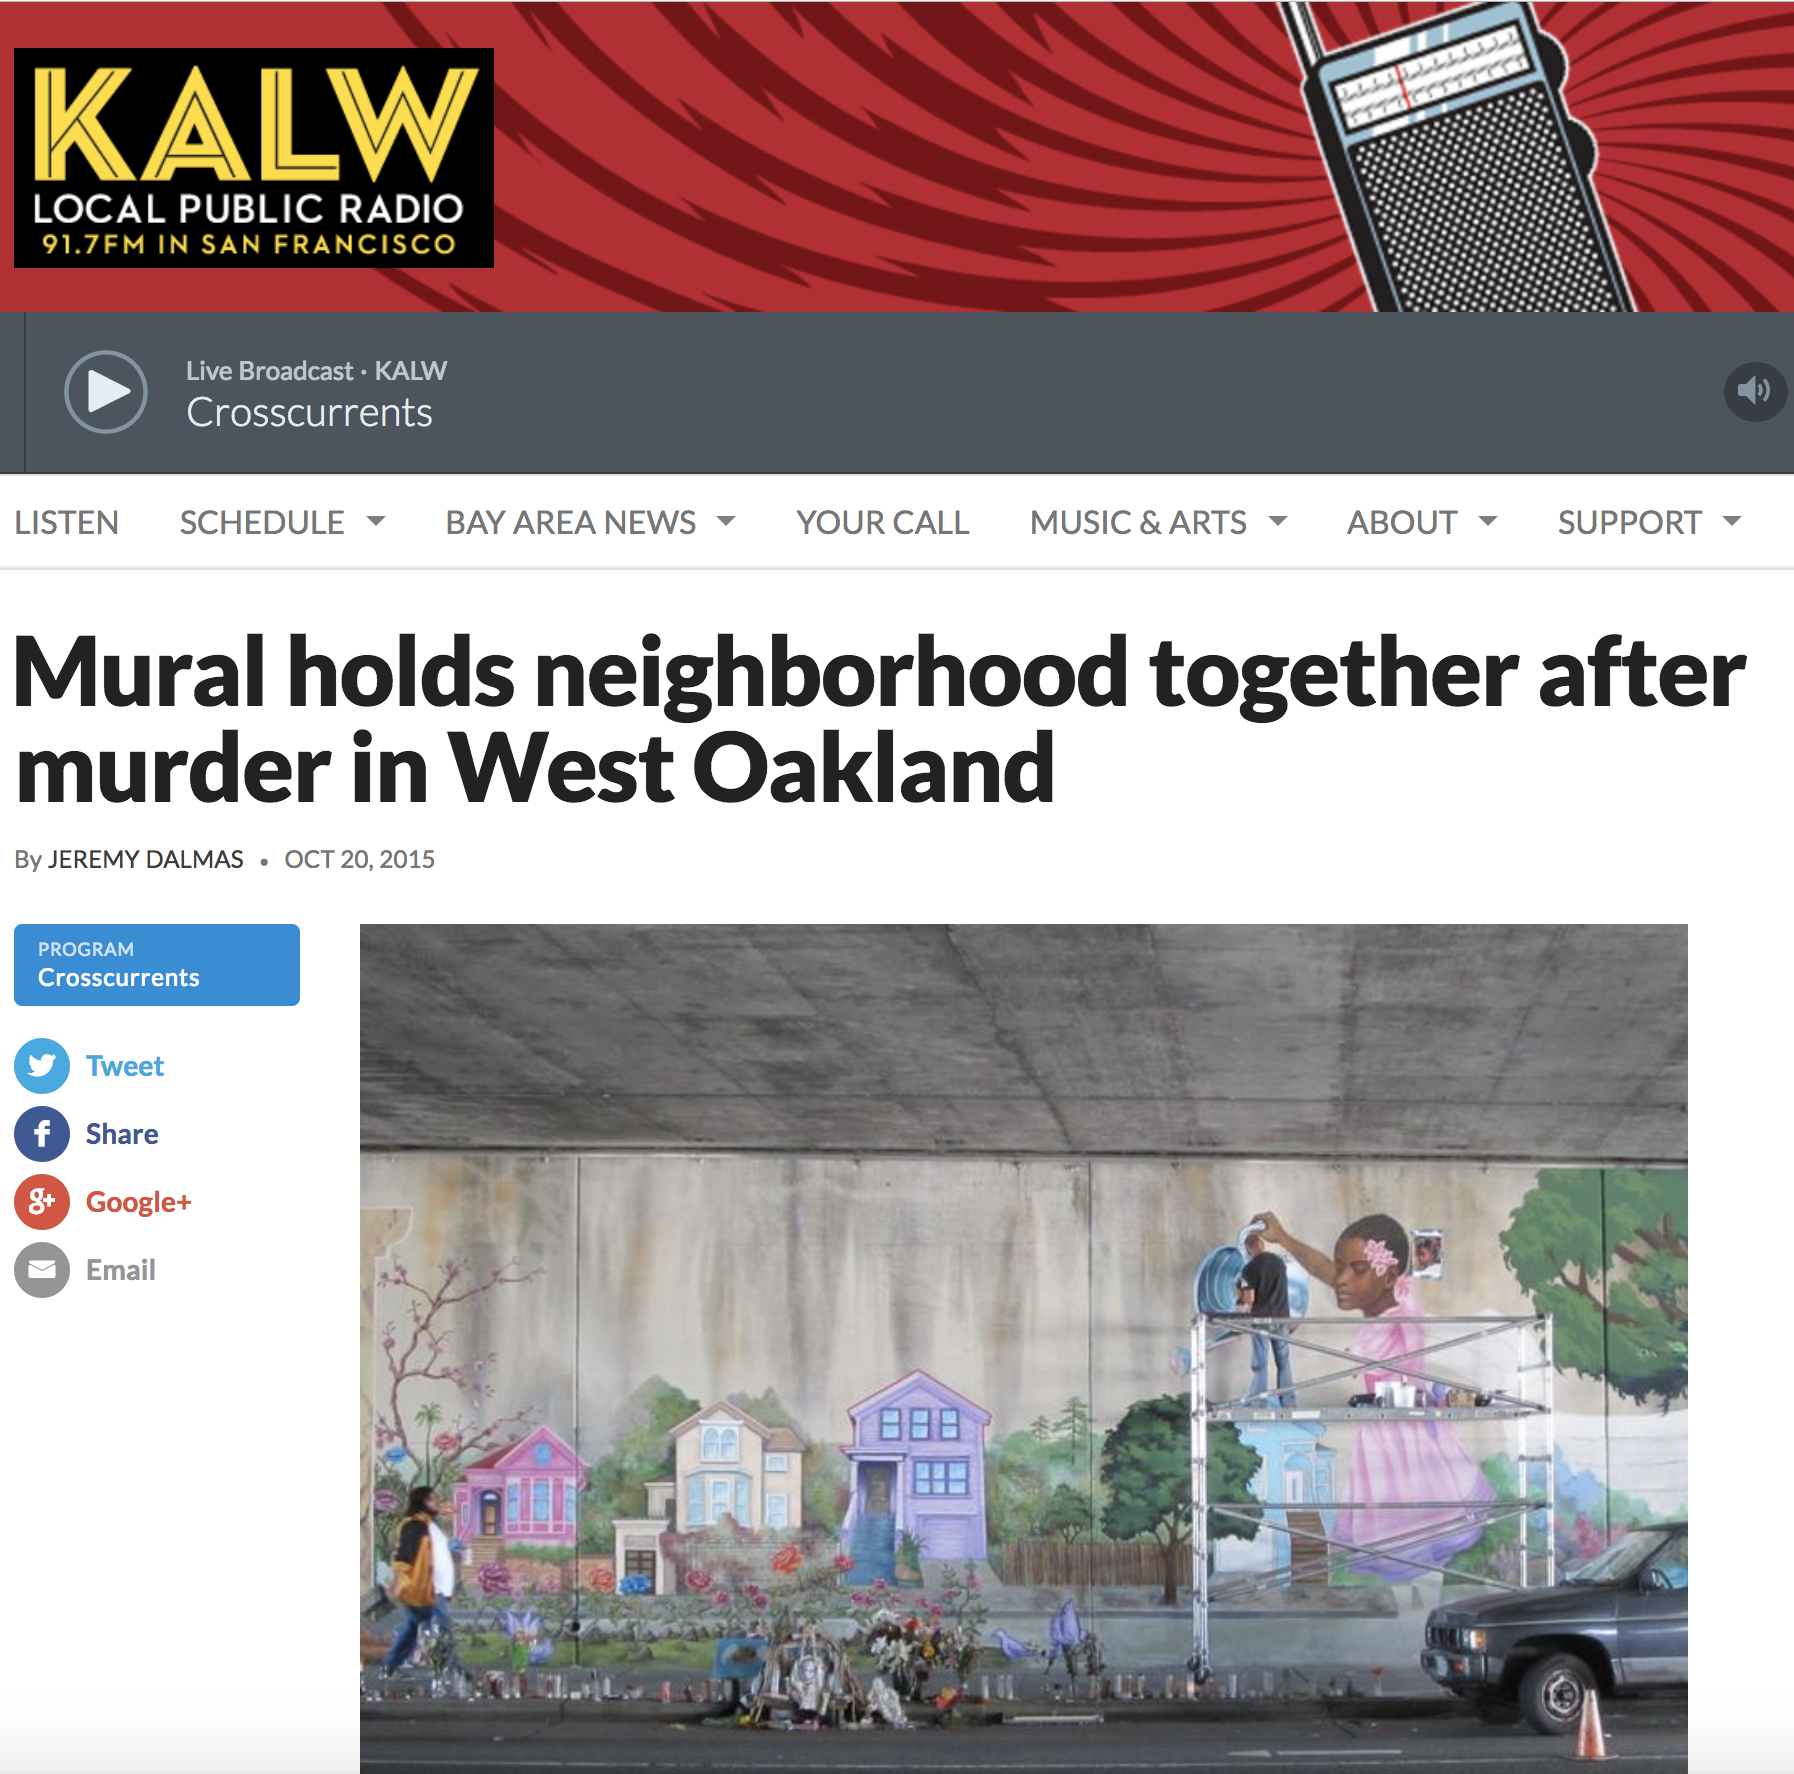 """KALW Audio Story - """"As public artists, street artists, there's an unspoken contract between ourselves and the public that while we're working they're going to leave us alone, look out for us,"""" he says. """"I don't feel any less safe today than I did the morning that we all came out here, Tuesday morning before Antonio got shot. We just have to trust that."""""""